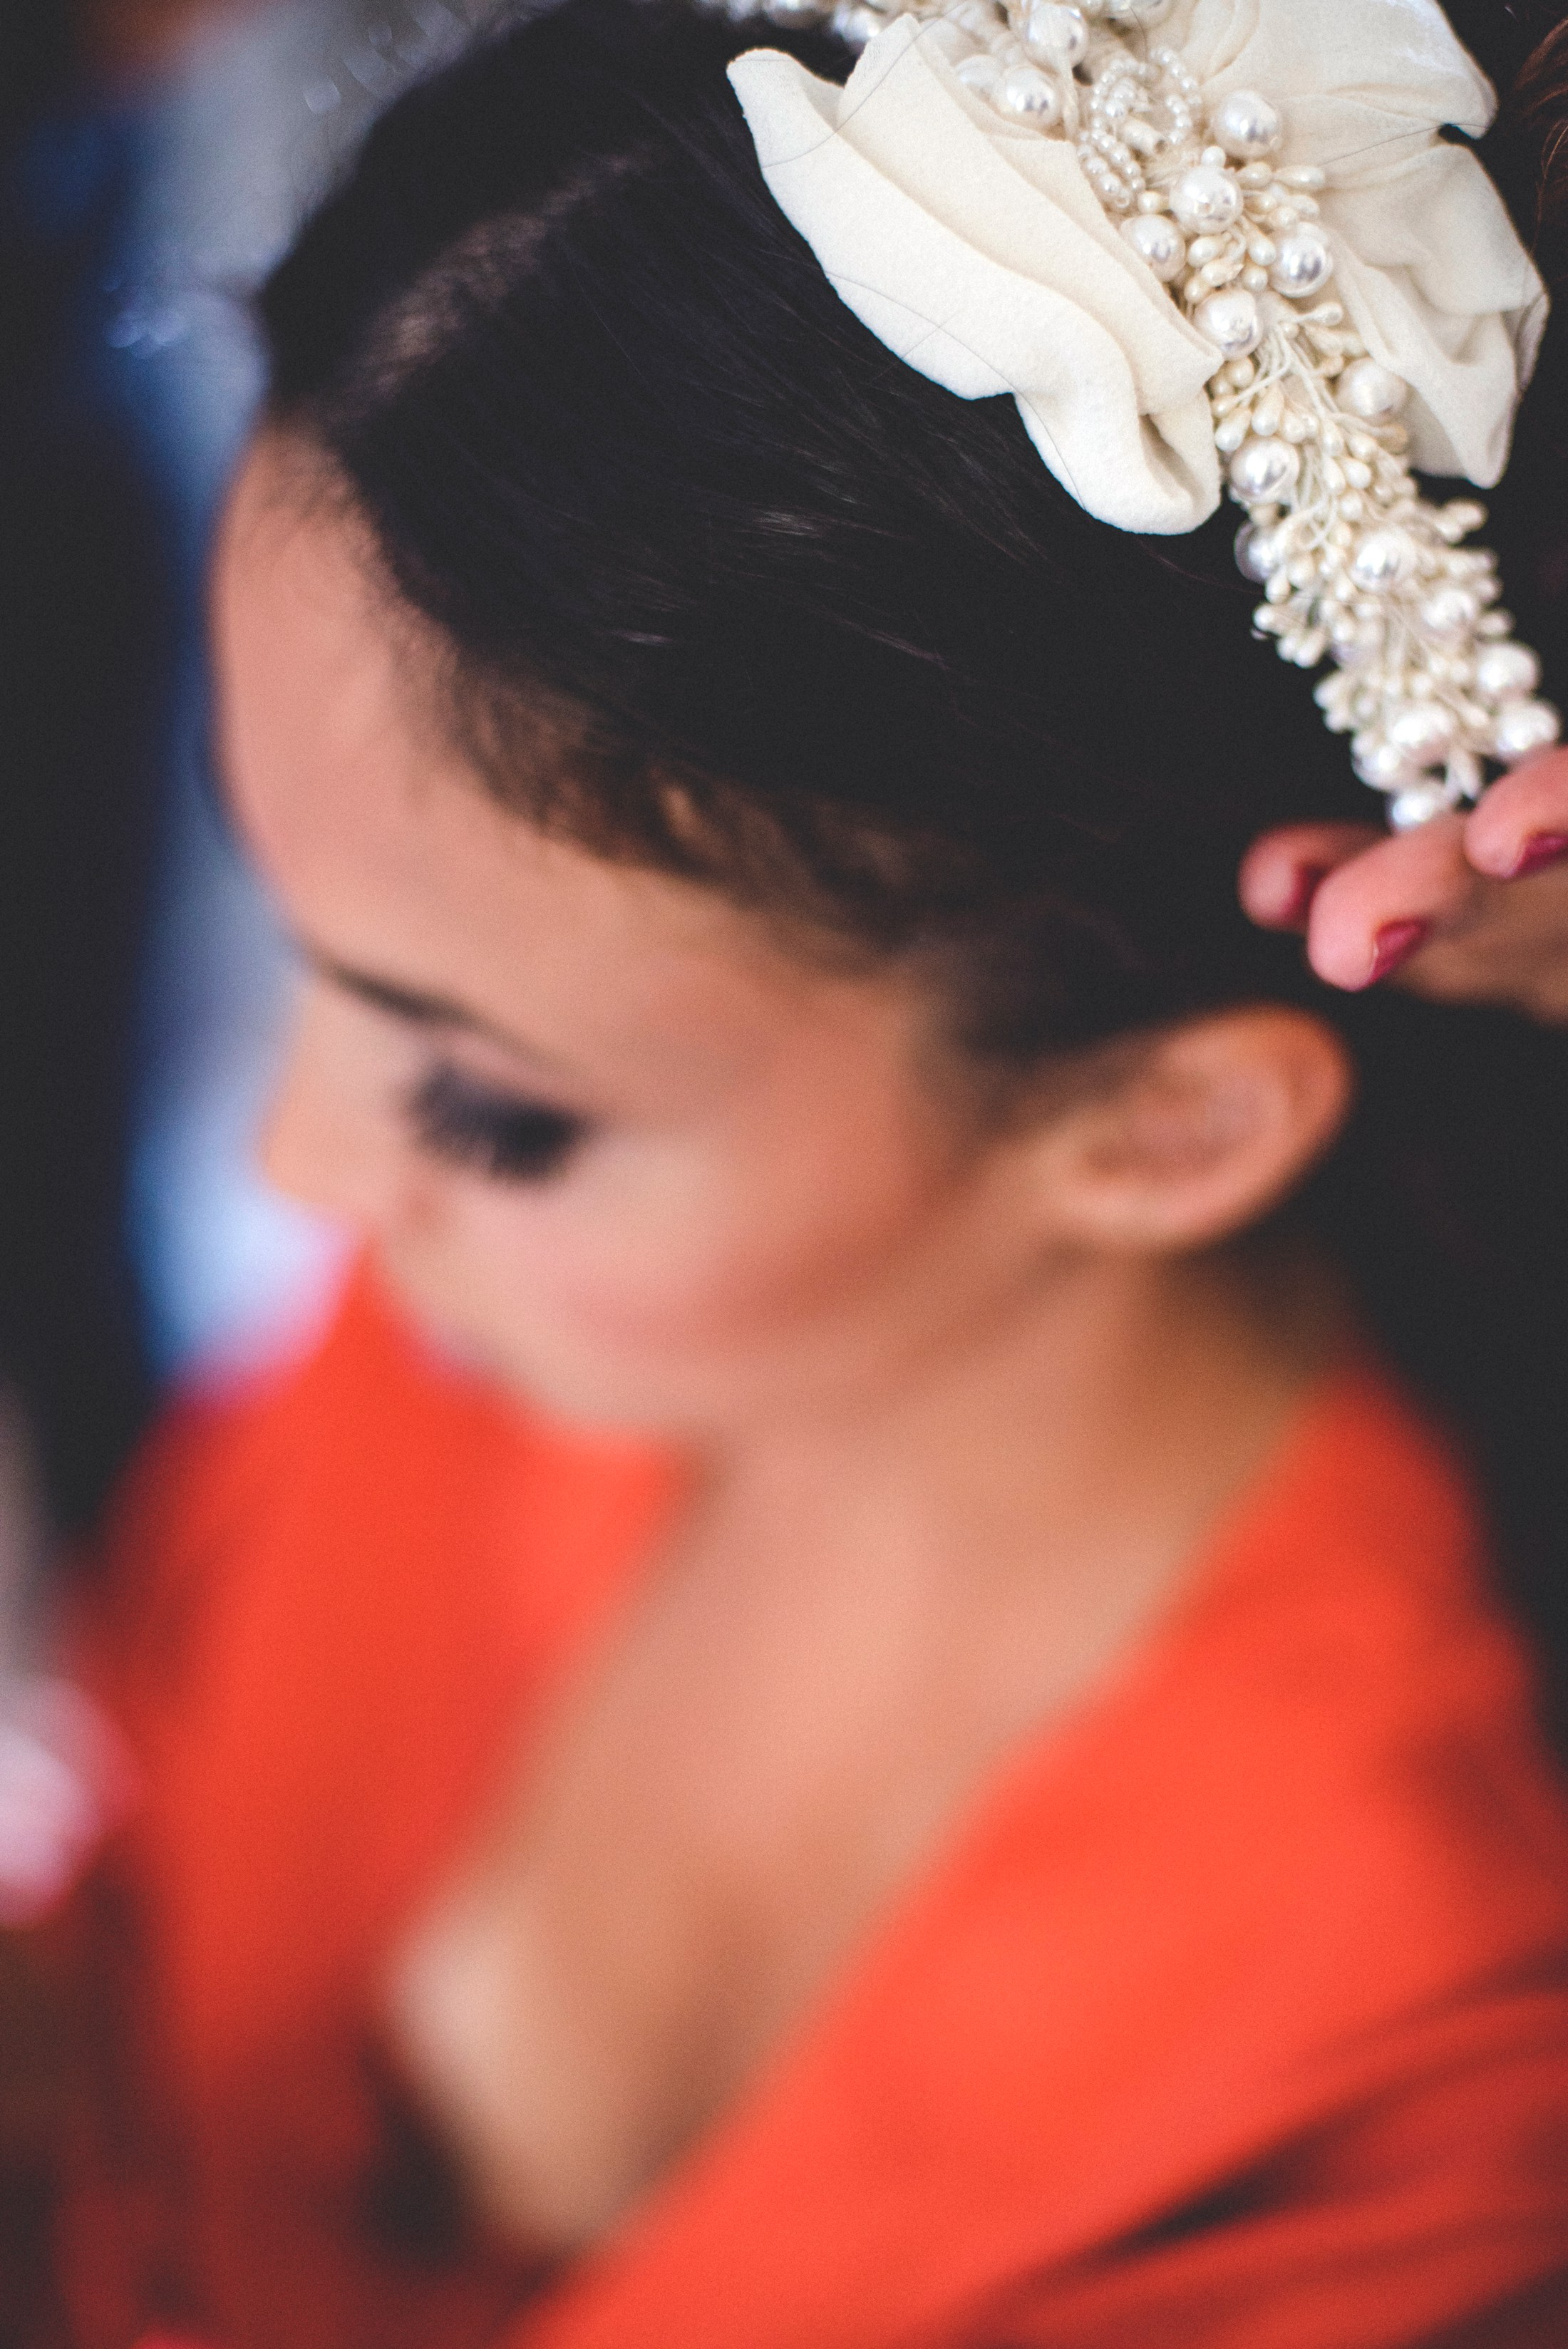 detail of the wedding hair decoration